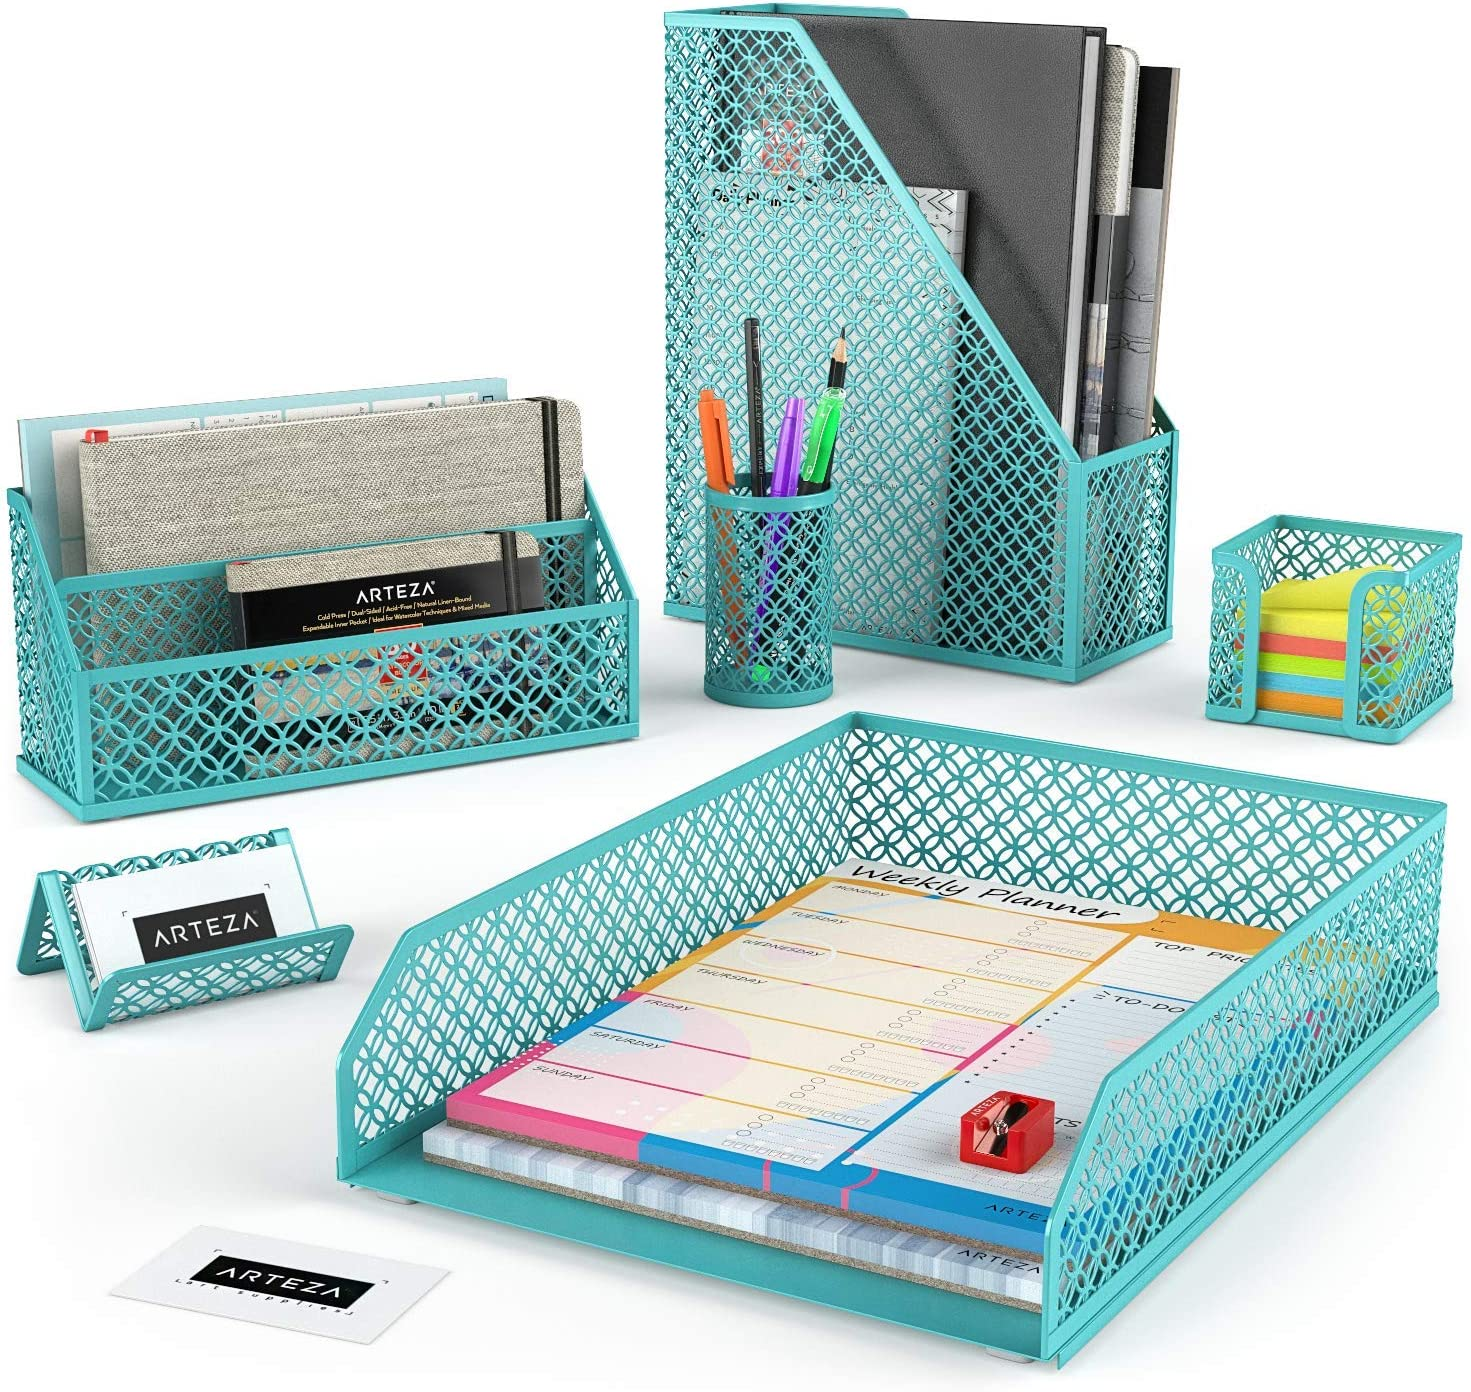 Arteza Desk Organizer Accessories Set in Tiffany Blue, 6-Piece Includes Pencil Cup Holder, Letter Sorter, Letter Tray, Magazine Holder, Name Card Holder, Sticky Note Holder for Home or Office